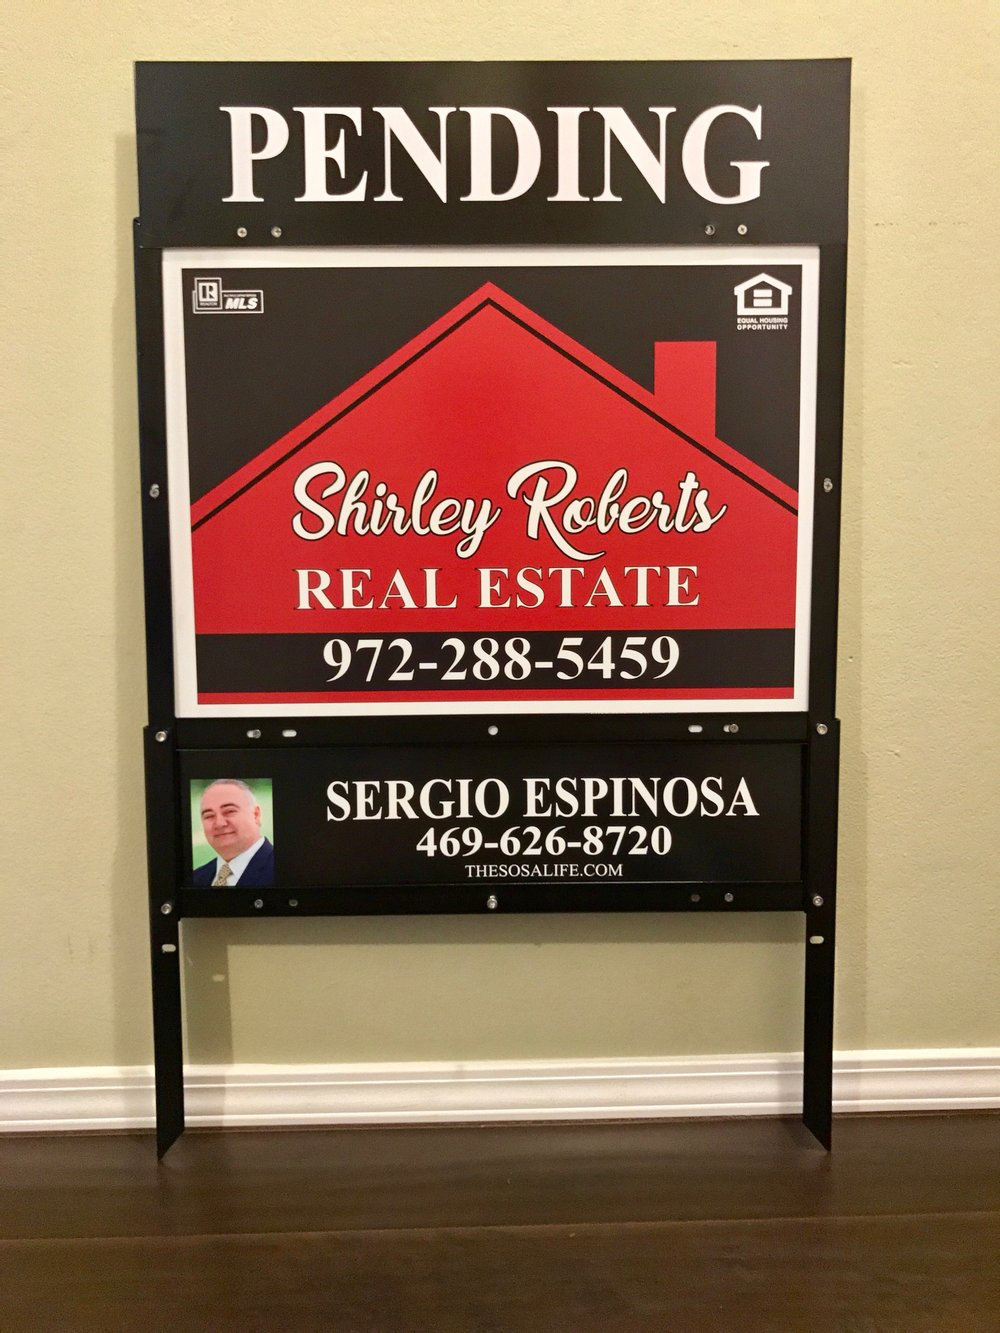 Espinosa Sergio-Shirley Roberts Real Estate.jpg